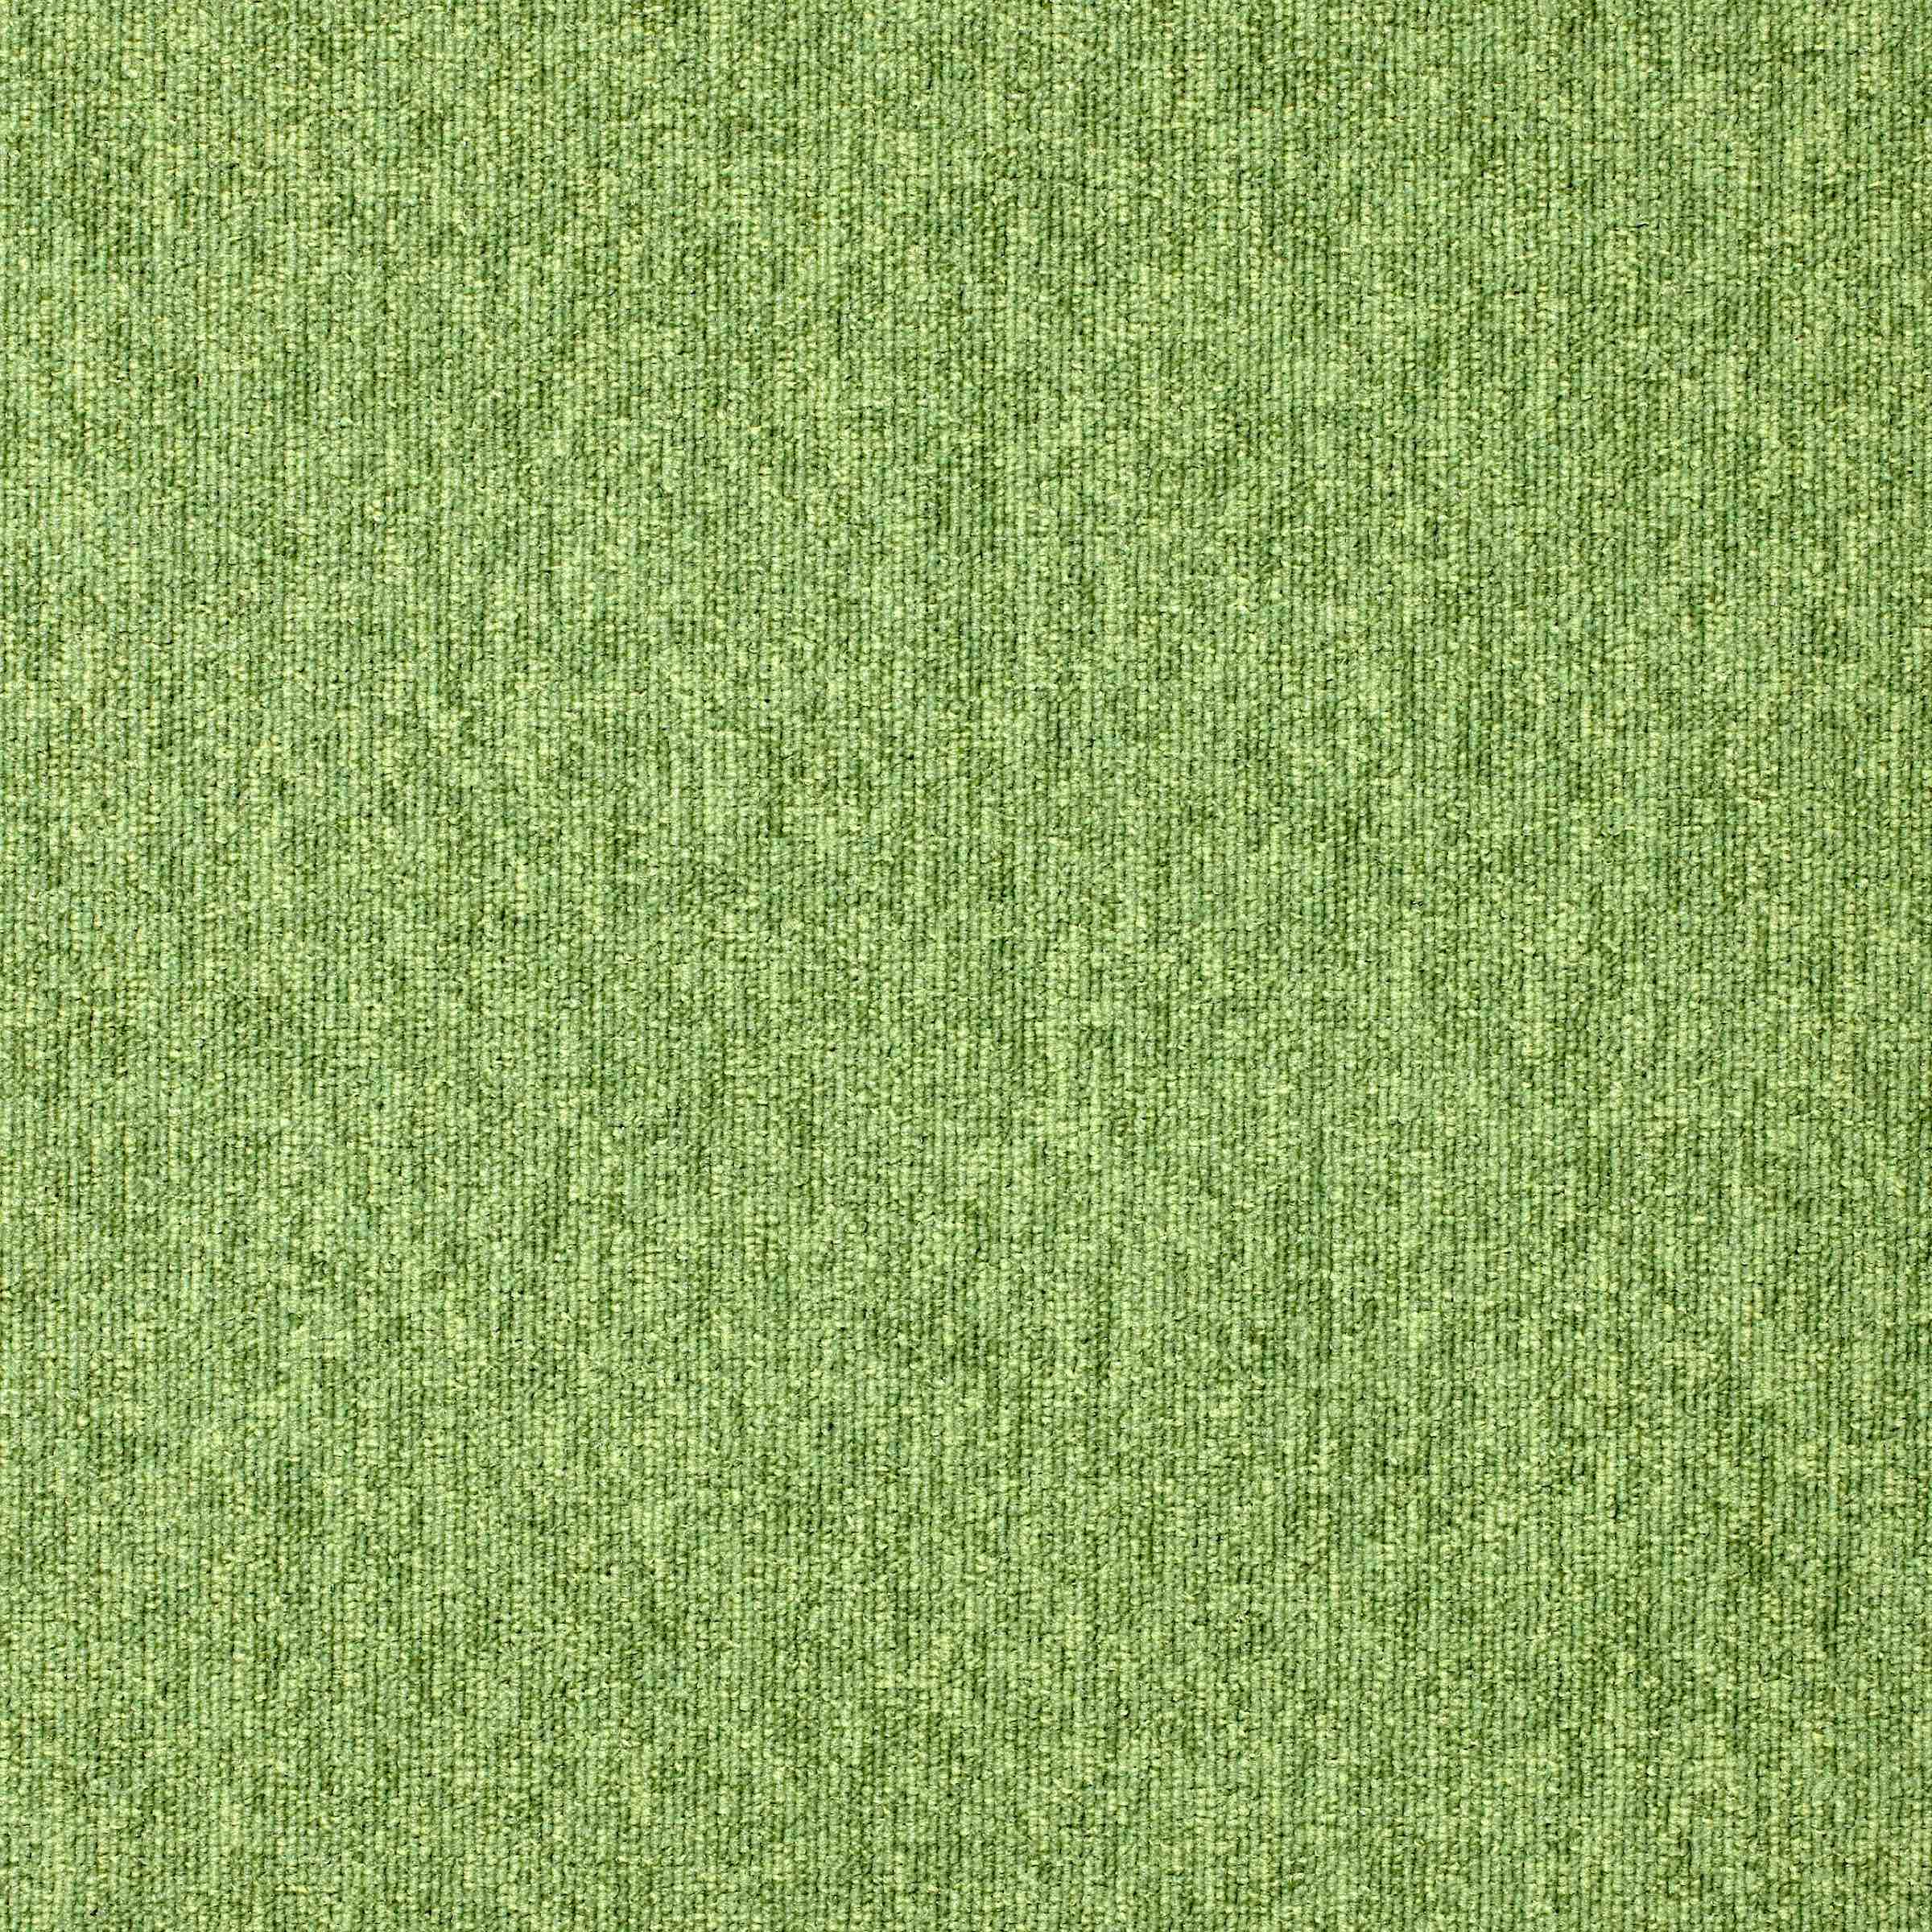 Diversity | Grasshopper, 550 | Paragon Carpet Tiles | Commercial Carpet Tiles